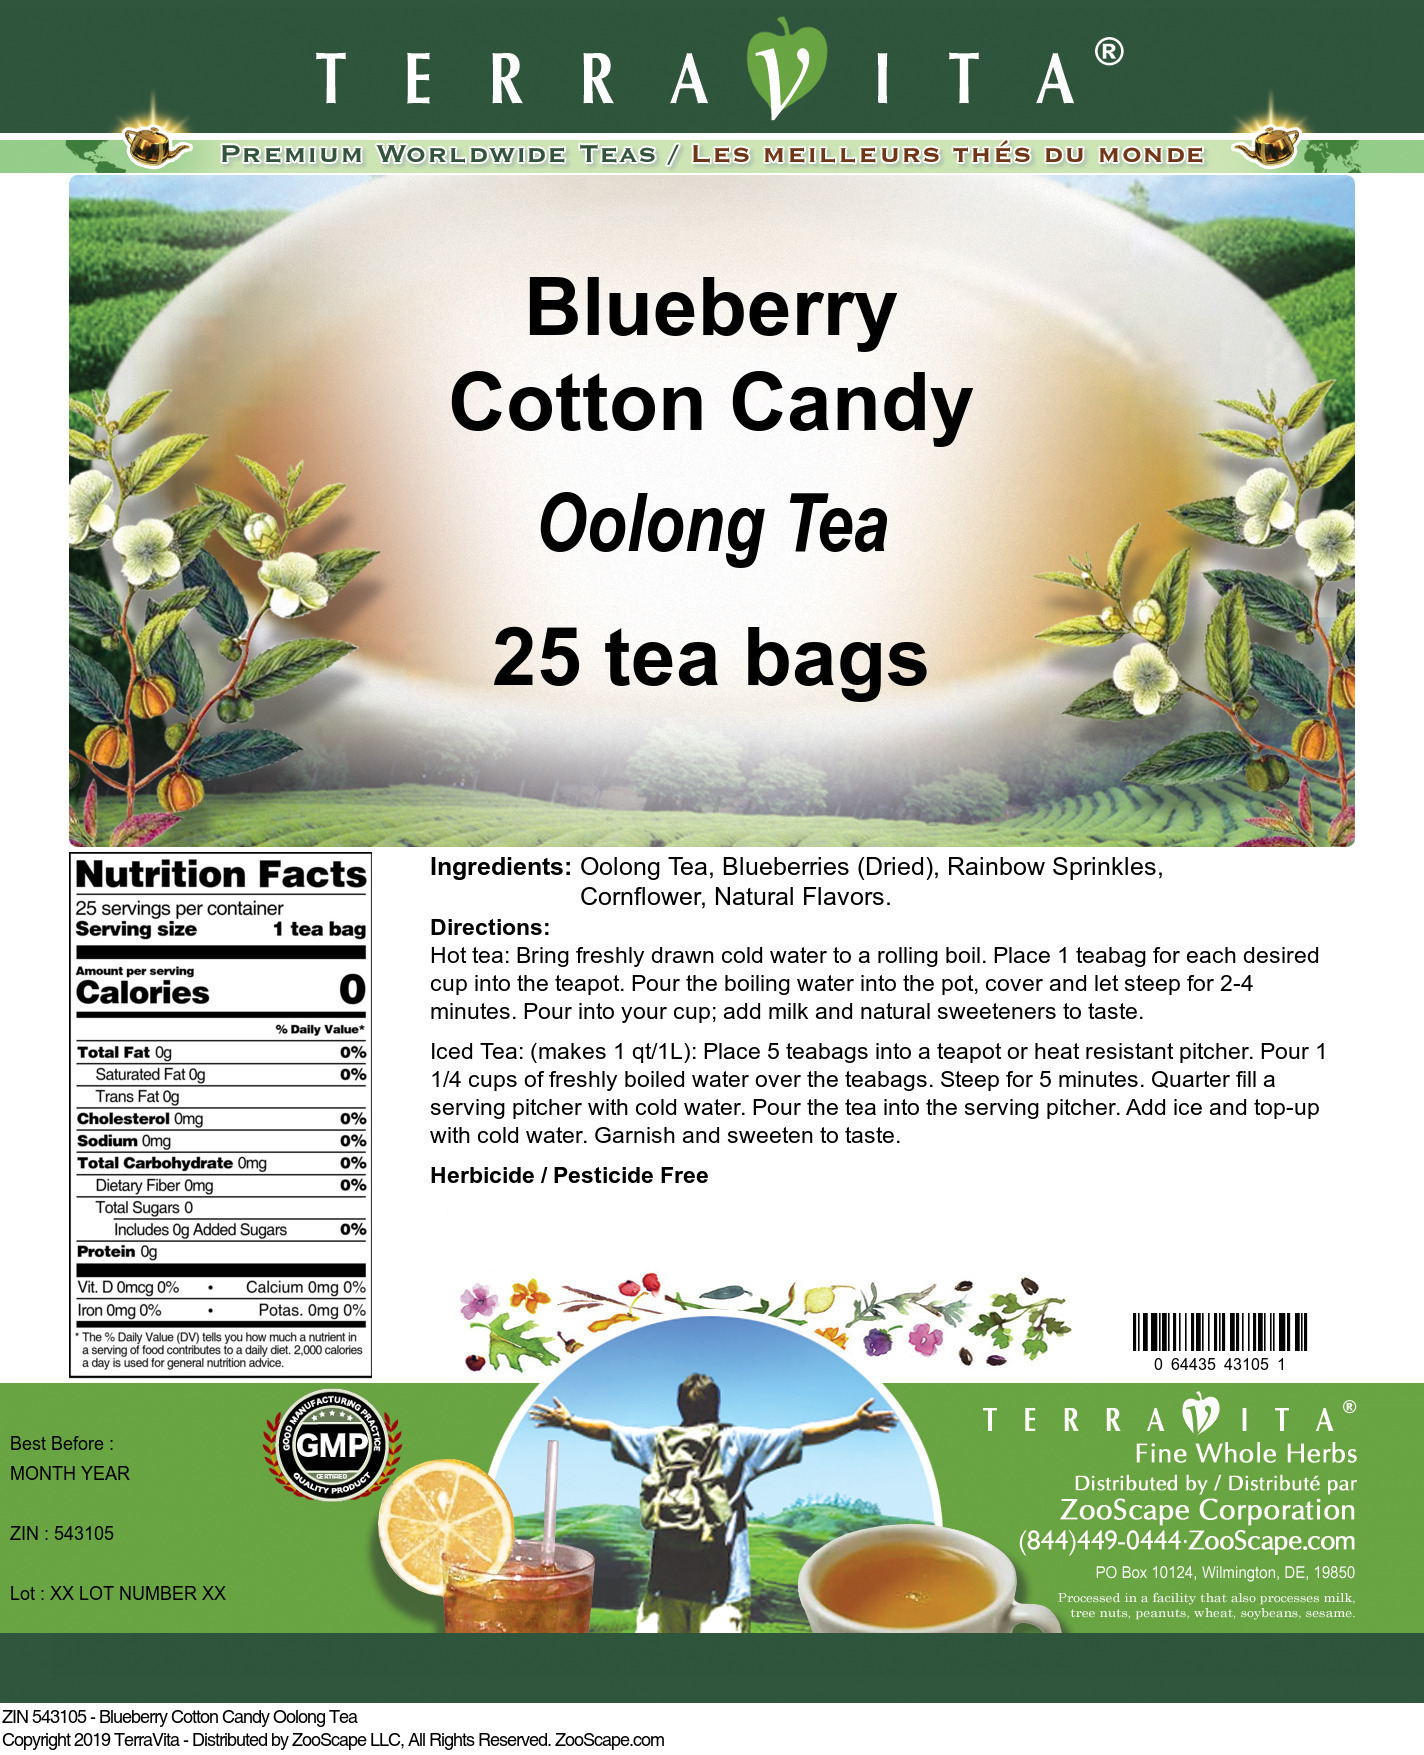 Blueberry Cotton Candy Oolong Tea